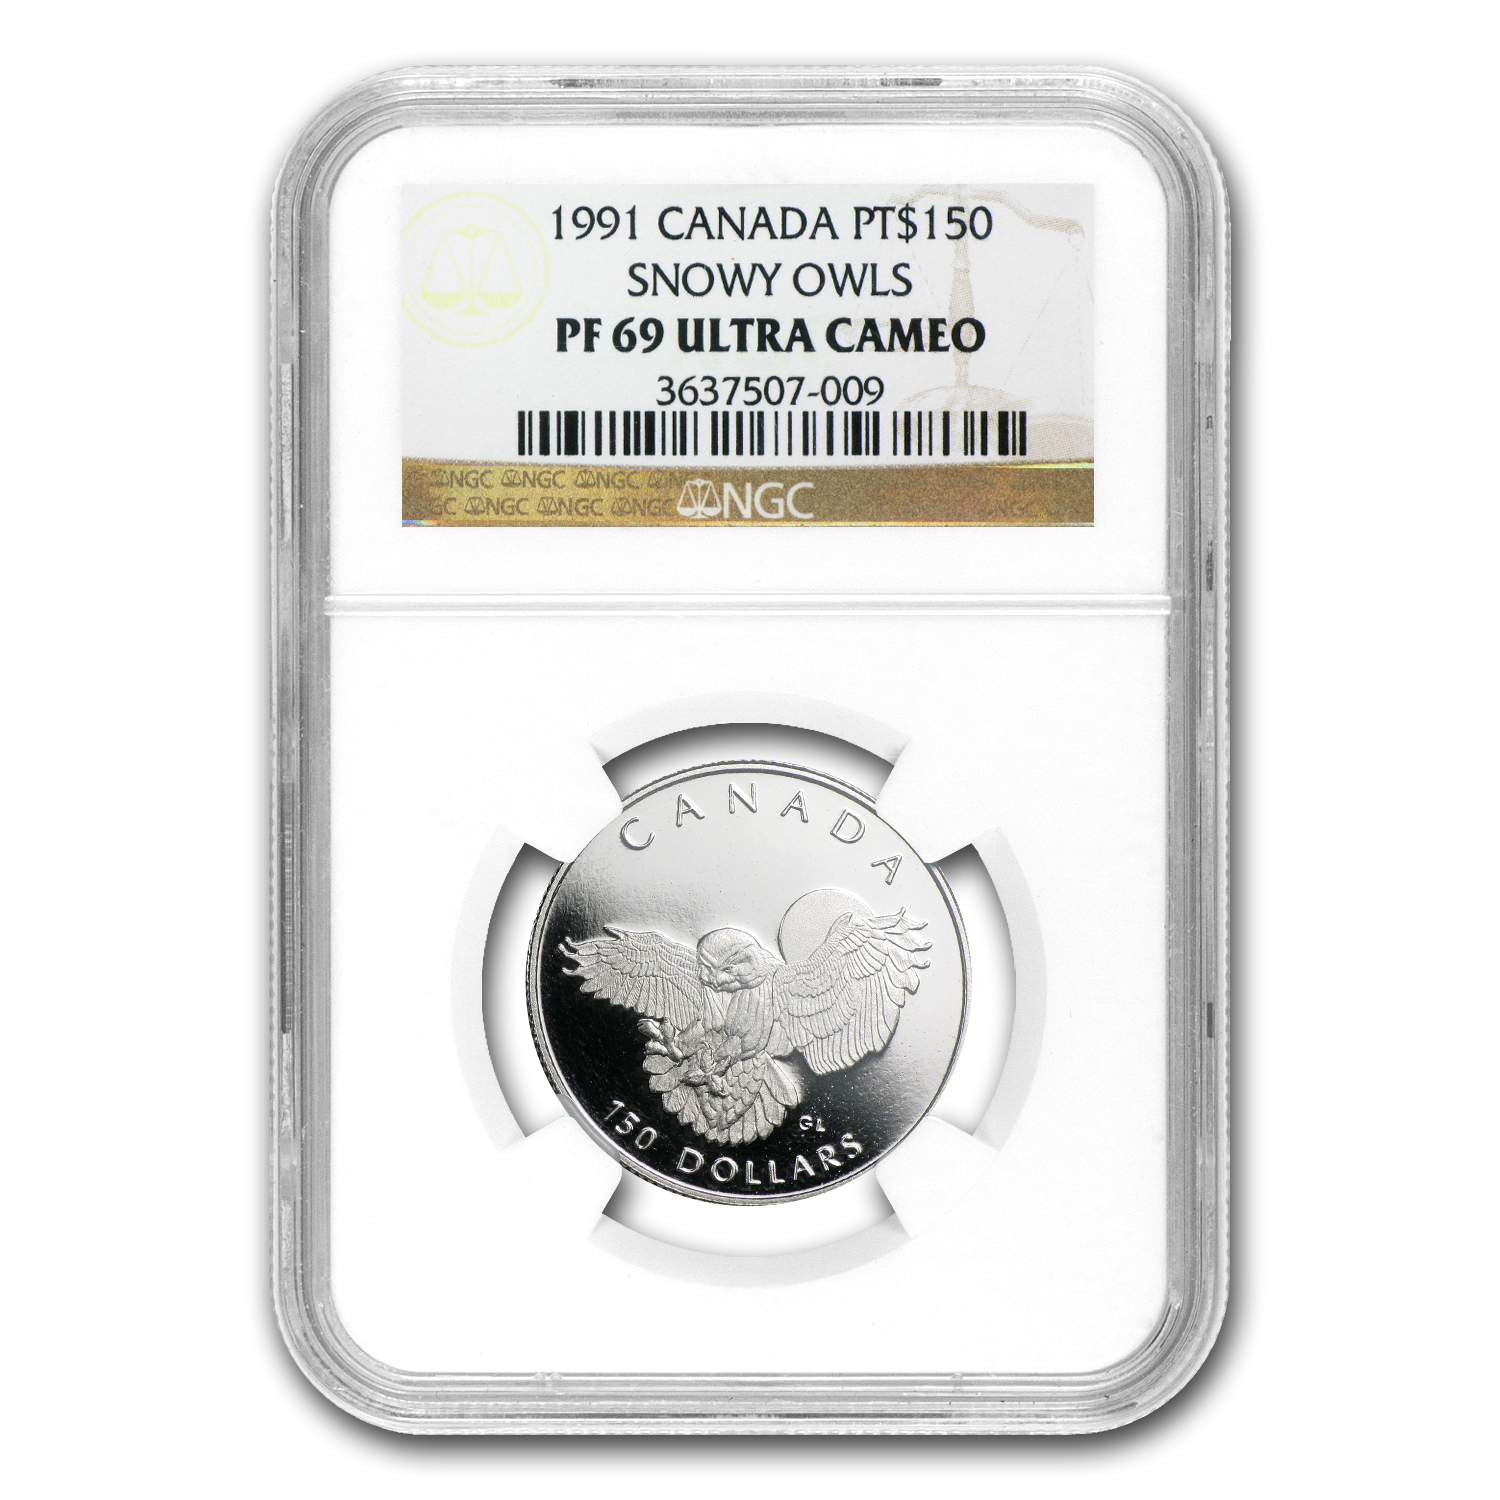 1991 1/2 oz Proof Platinum Canadian Snowy Owl PF-69 NGC